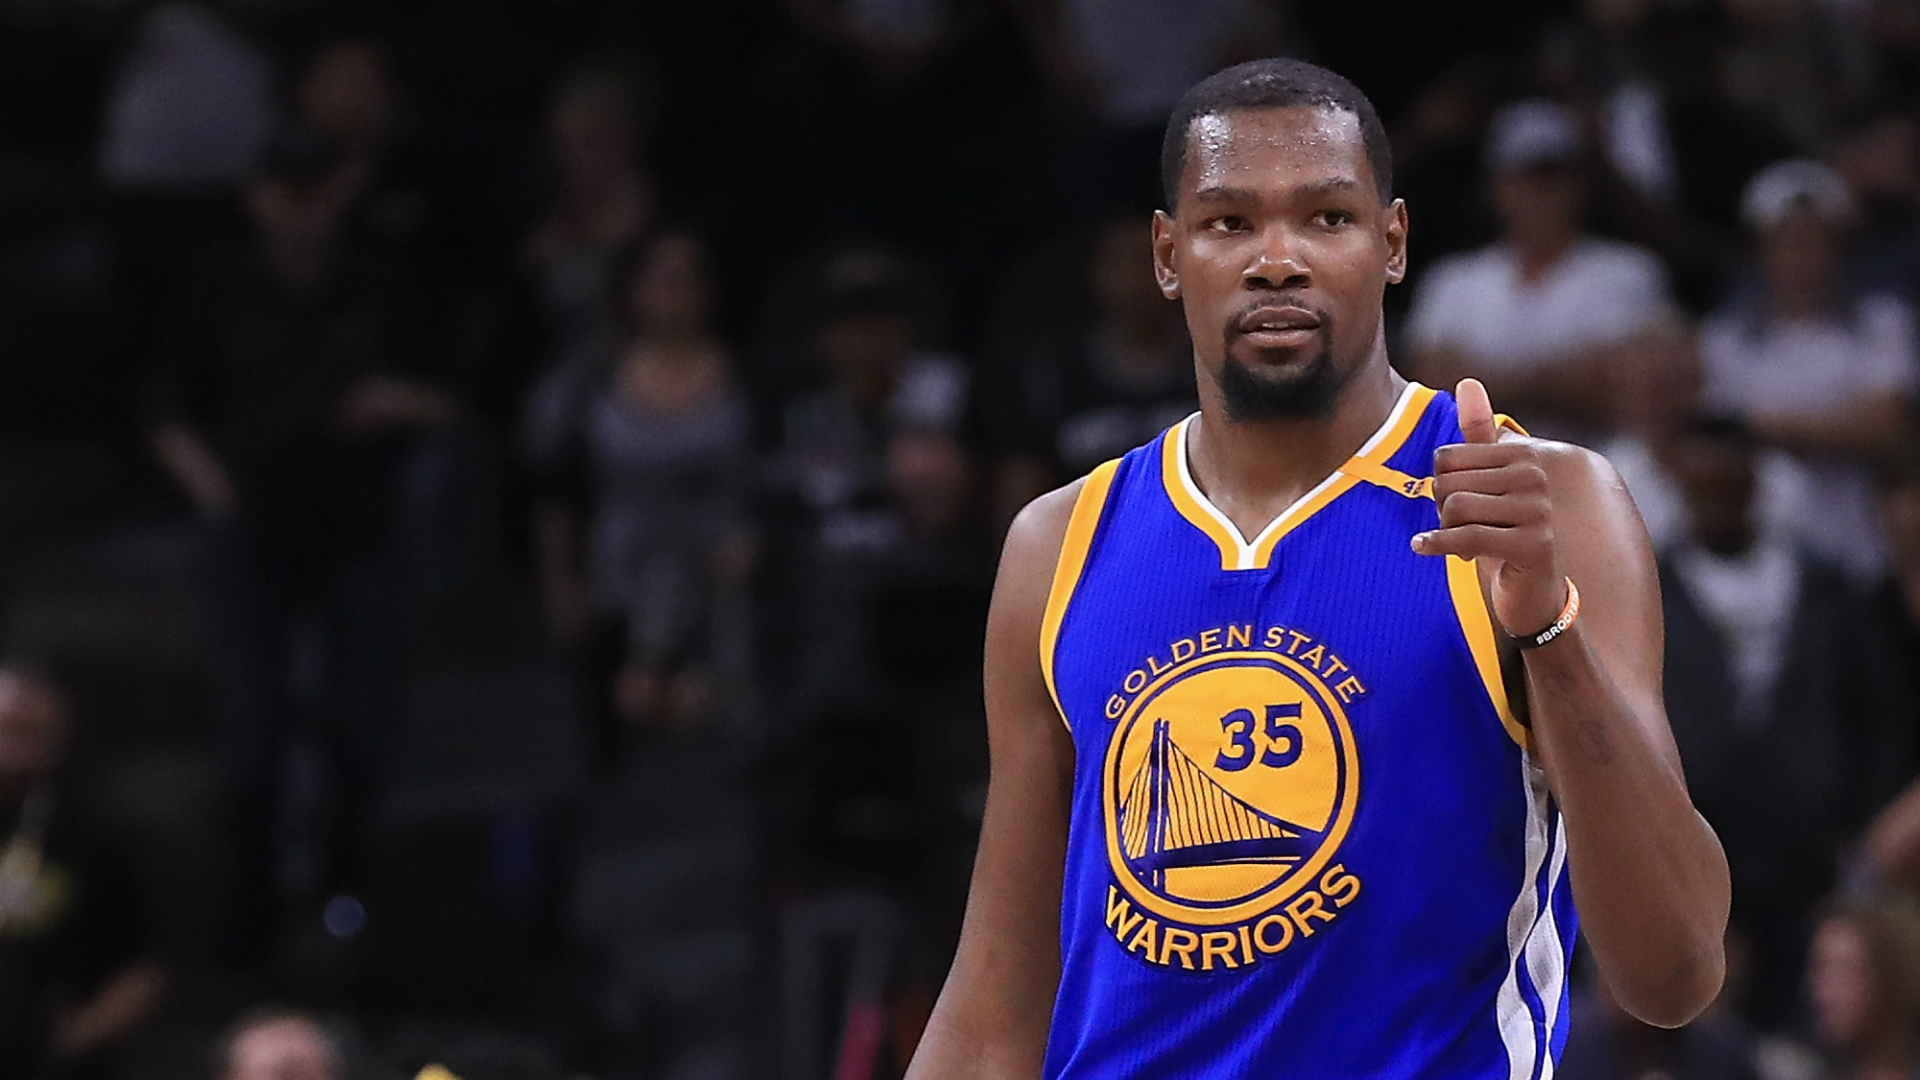 'Swagger' TV drama featuring Kevin Durant ordered to series by Apple